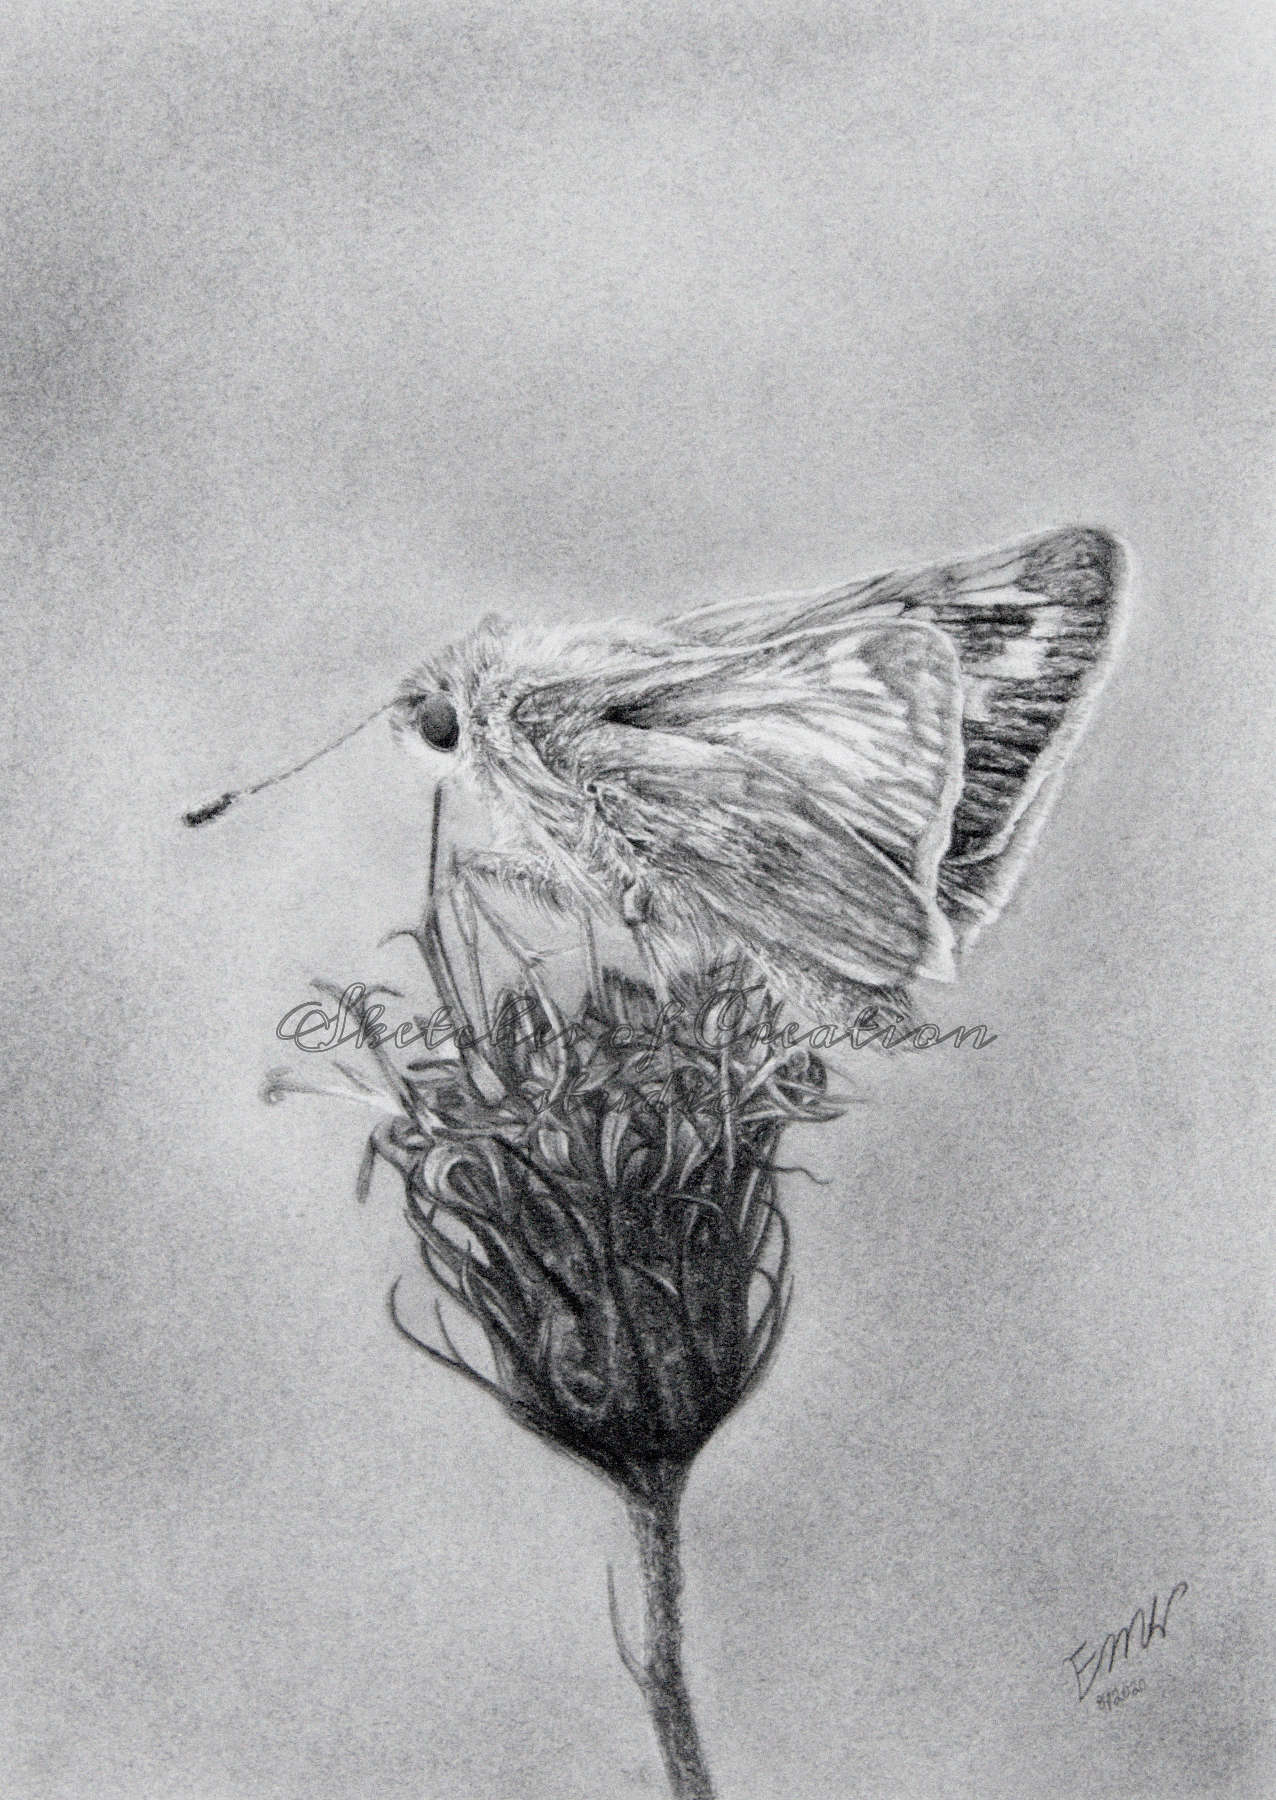 'Skipper' a drawing of a skipper butterfly on New York Ironweed. 5x7 inches. Completed August 2020